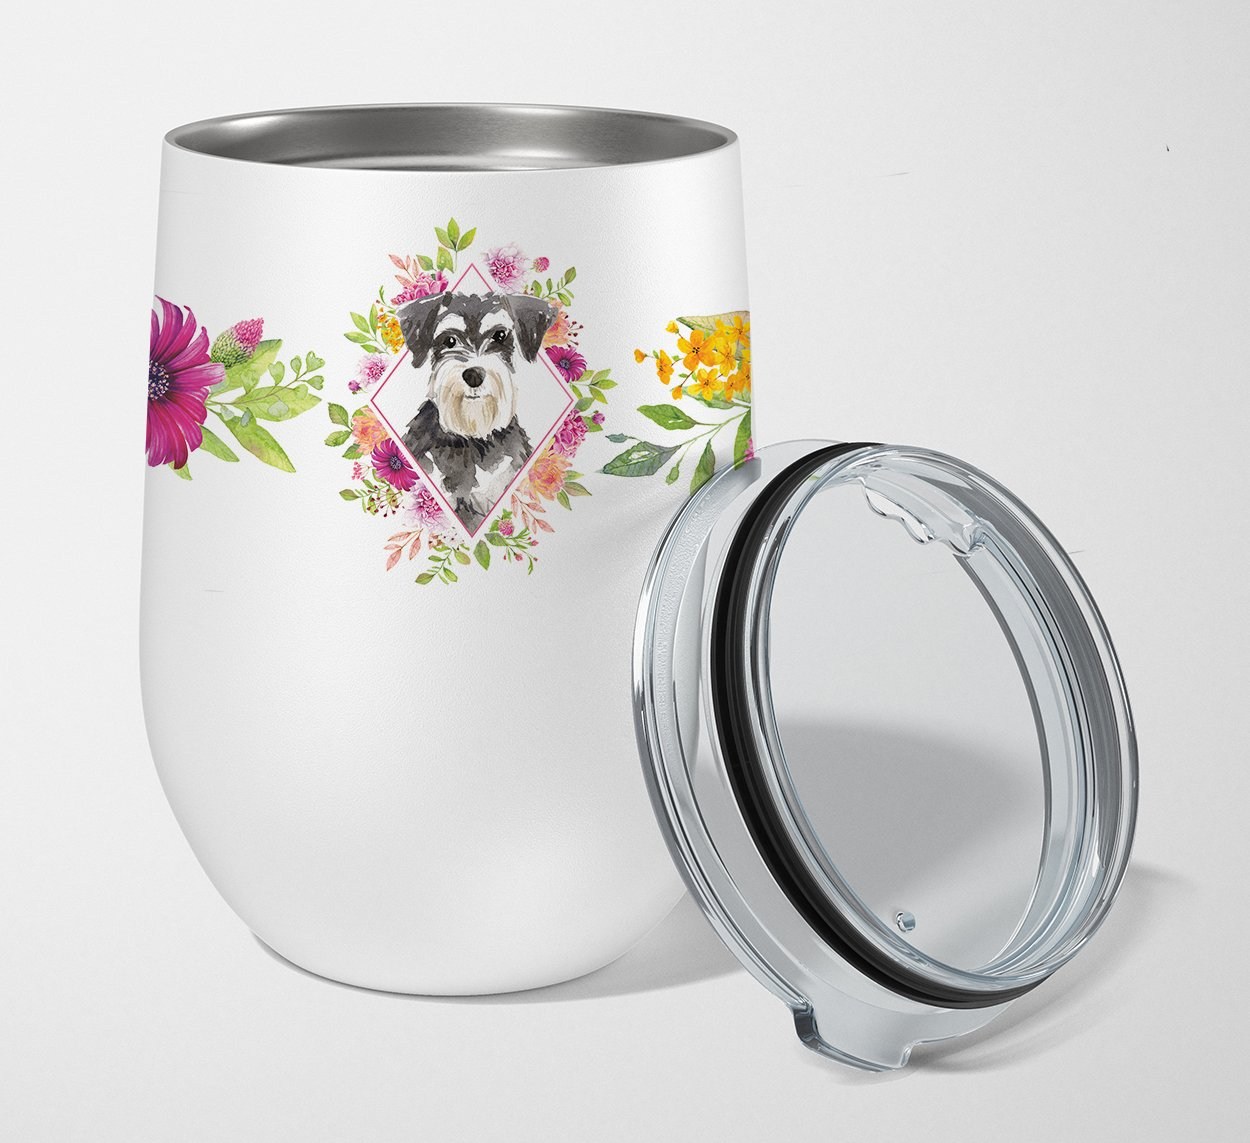 Schnauzer #2 Pink Flowers Stainless Steel 12 oz Stemless Wine Glass CK4222TBL12 by Caroline's Treasures